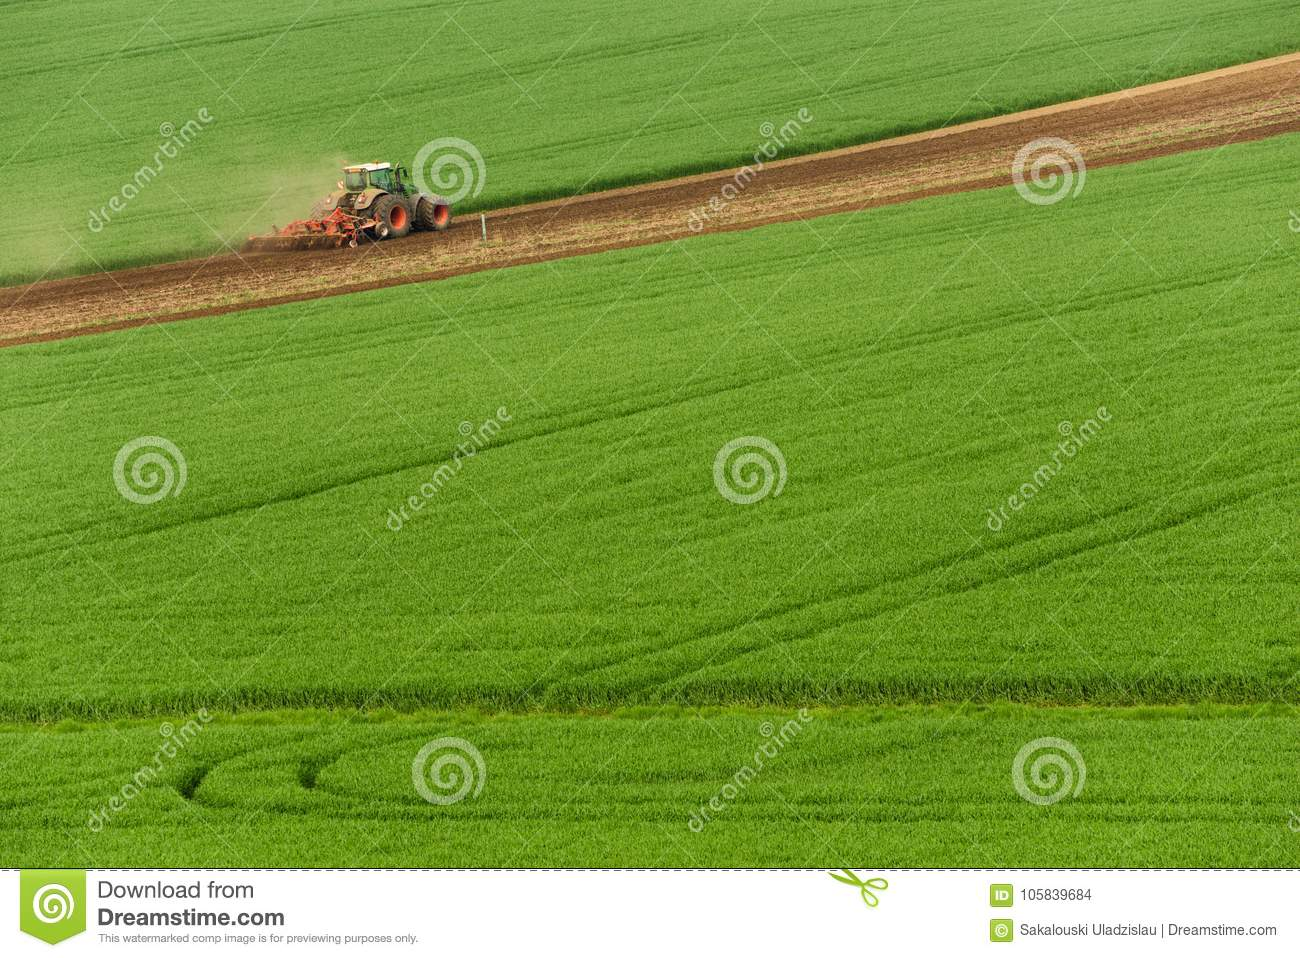 Scenic View Of Modern Farming Tractor Which Plowing Green Field. Agriculture Tractor Cultivating Wheat Field And Creating Green Ab